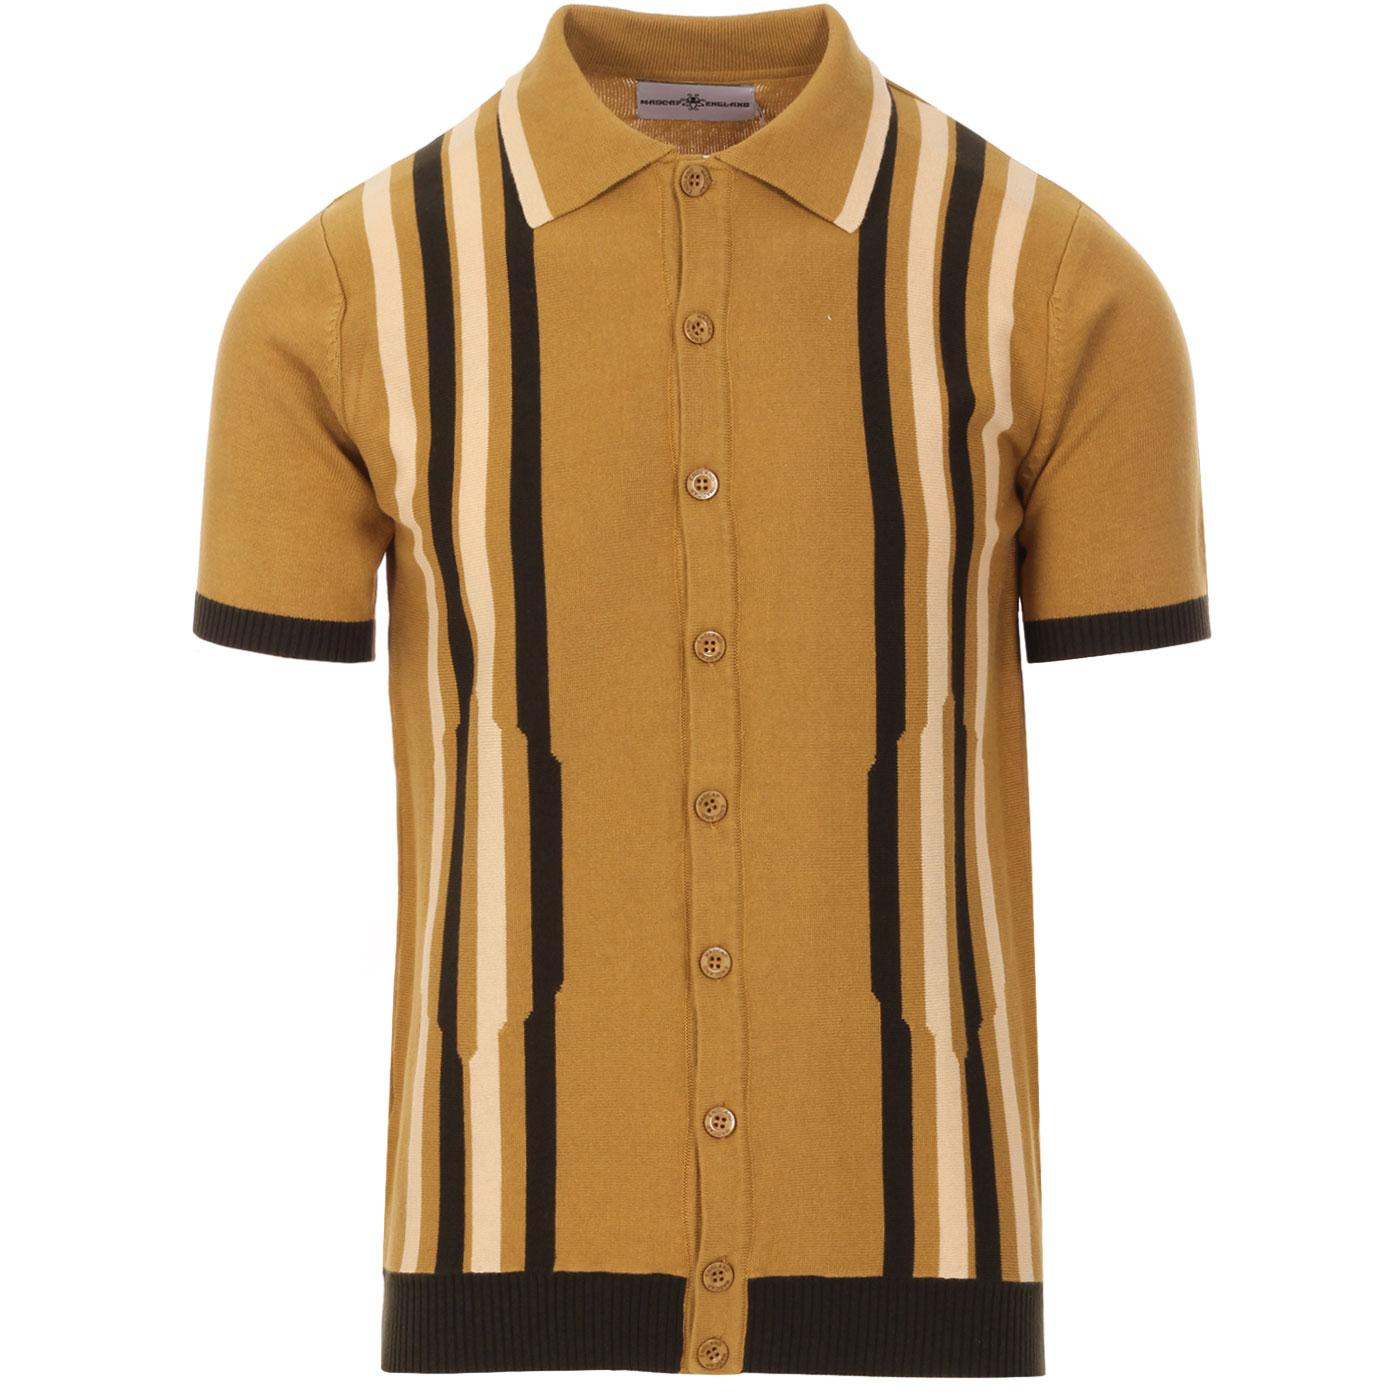 Shockwave MADCAP ENGLAND Mod Stripe Knit Polo (BM)